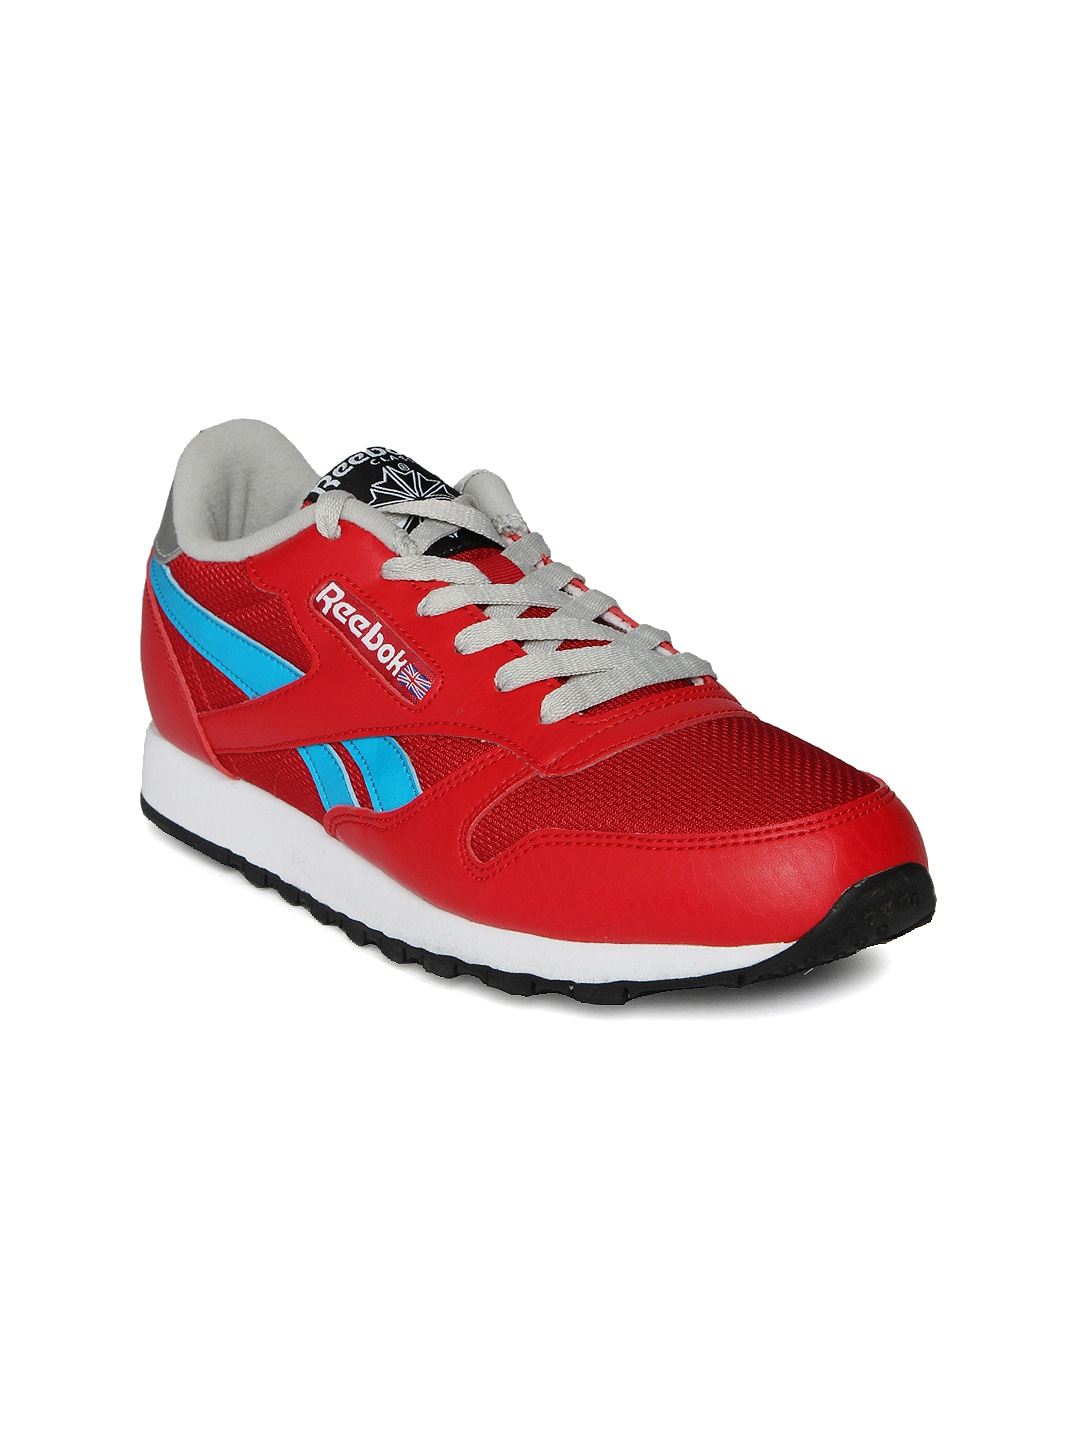 be83e82bd Reebok bs5523 Women Red Classic Protonium Running Shoes- Price in India